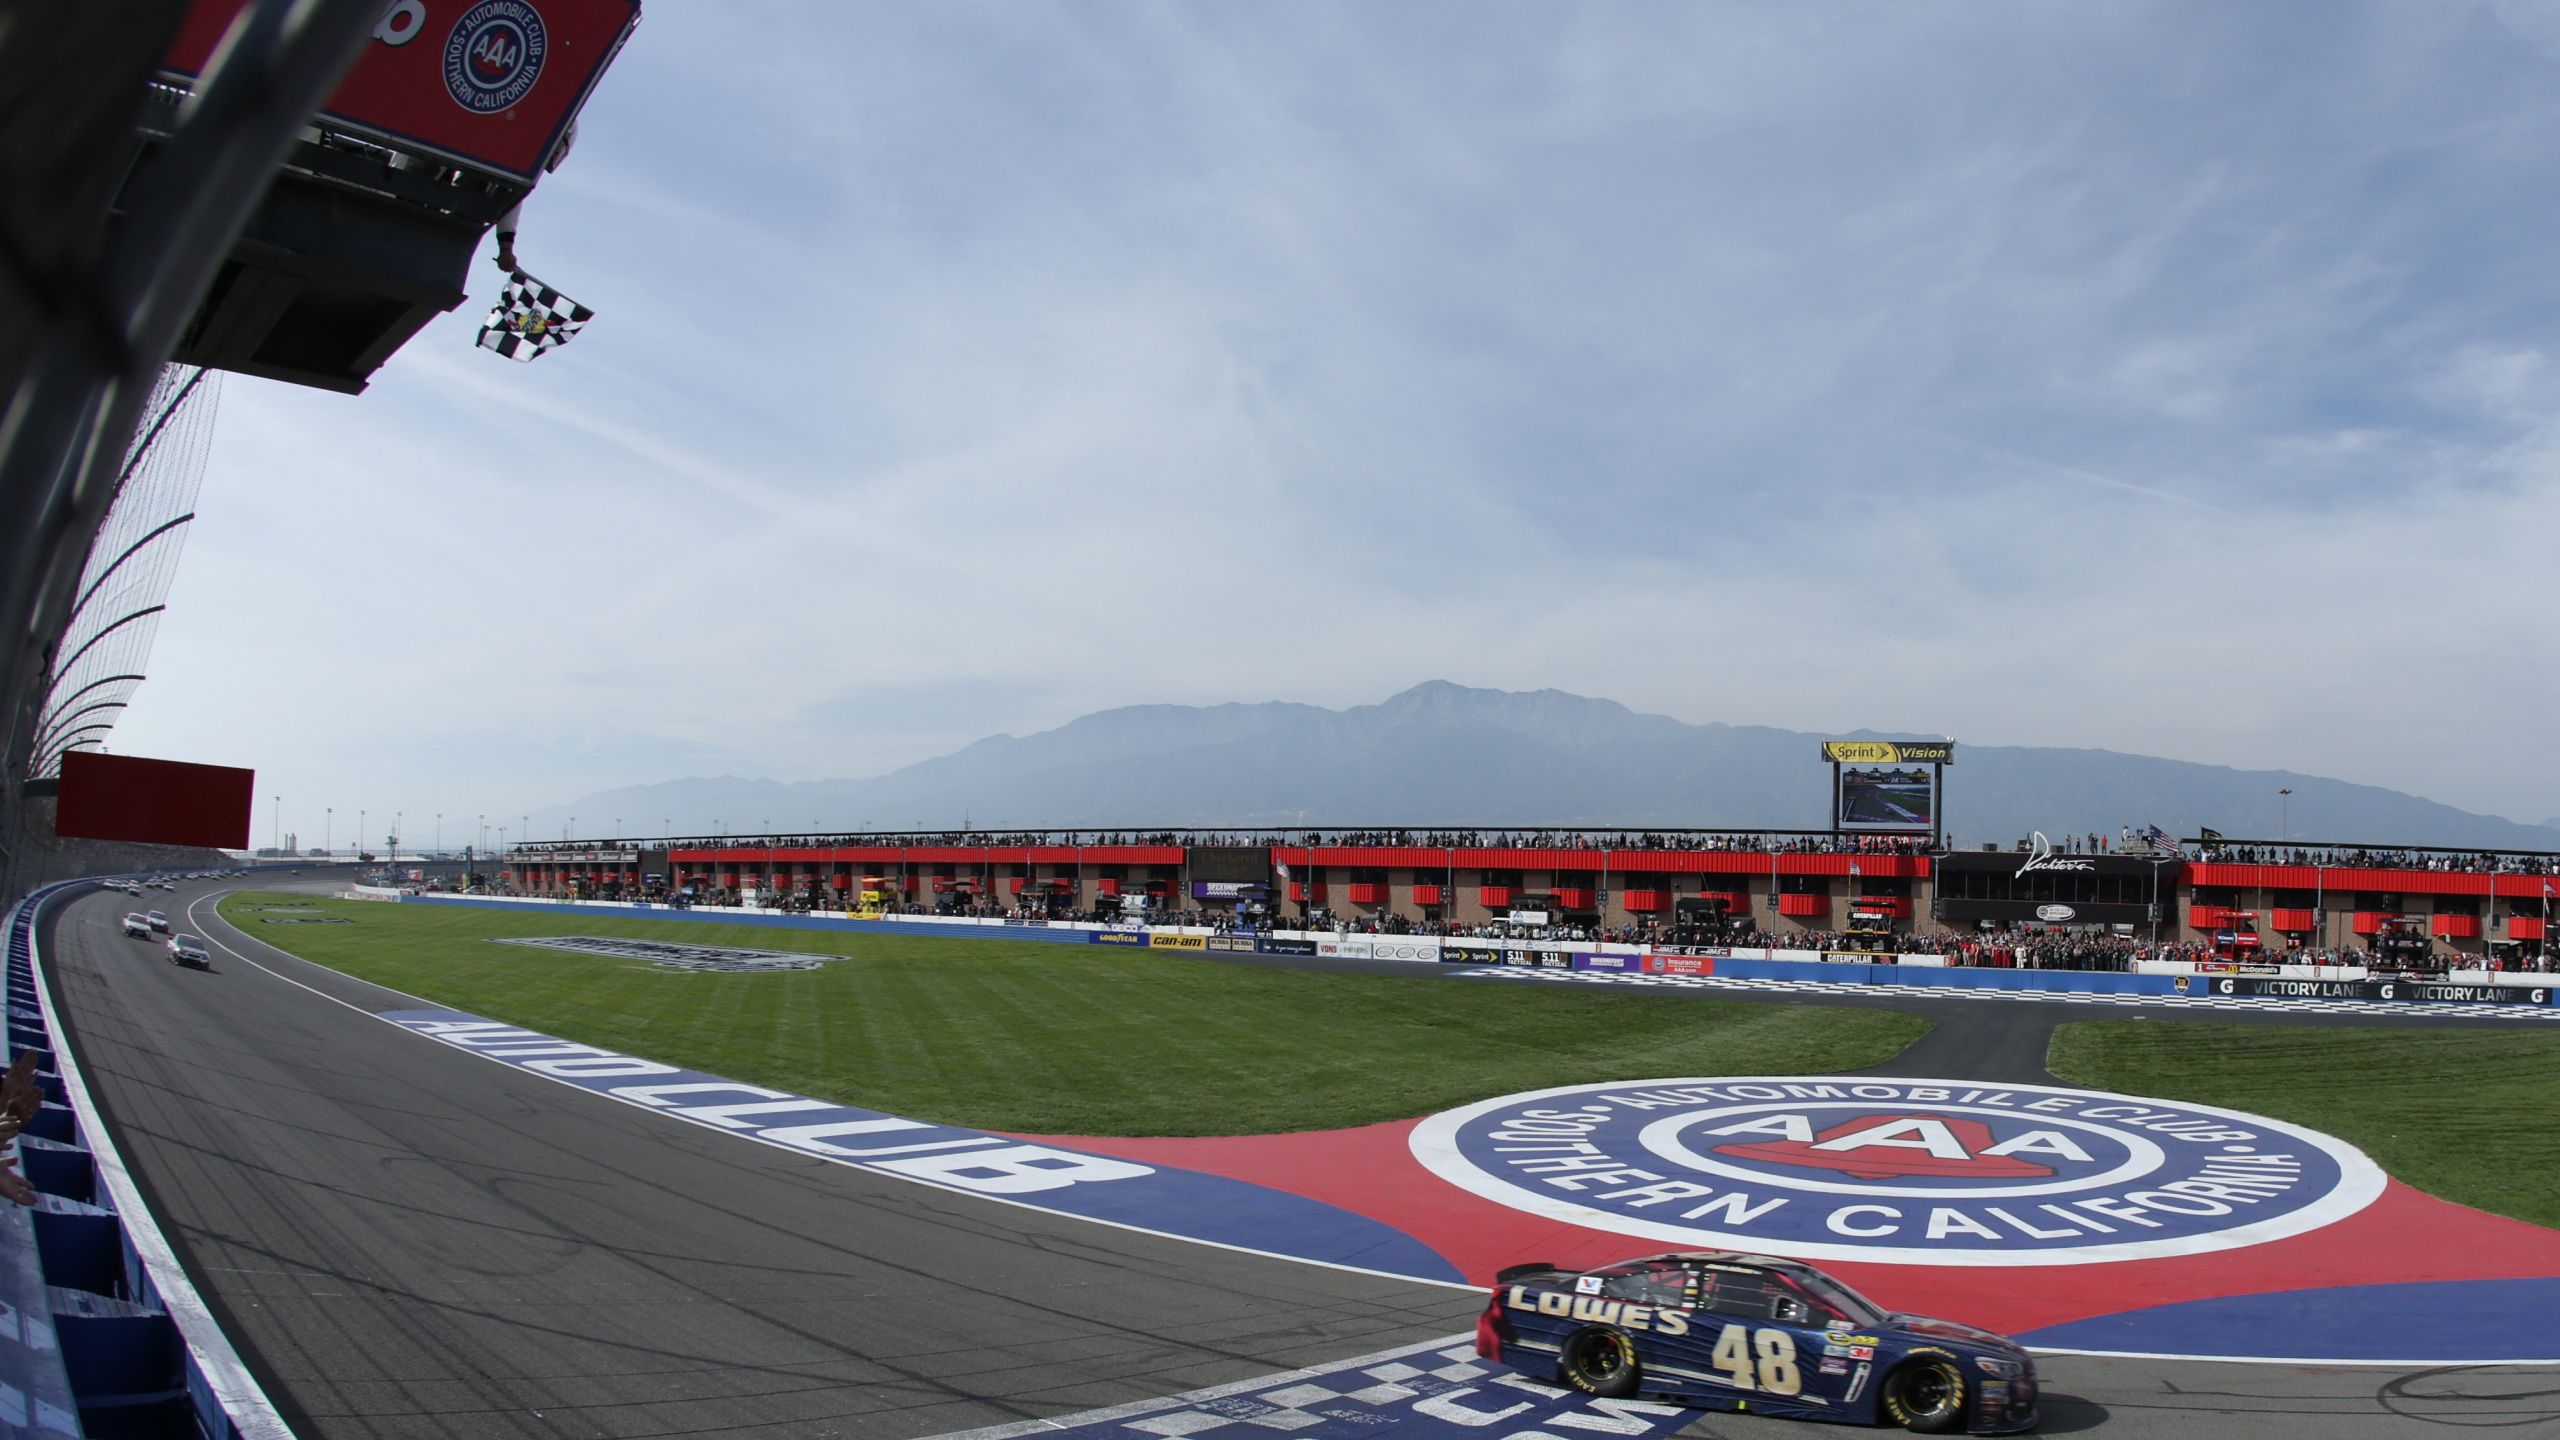 The NASCAR Sprint Cup Series Auto Club 400 is held at the Auto Club Speedway in Fontana on March 20, 2016. (Jeff Gross/Getty Images)